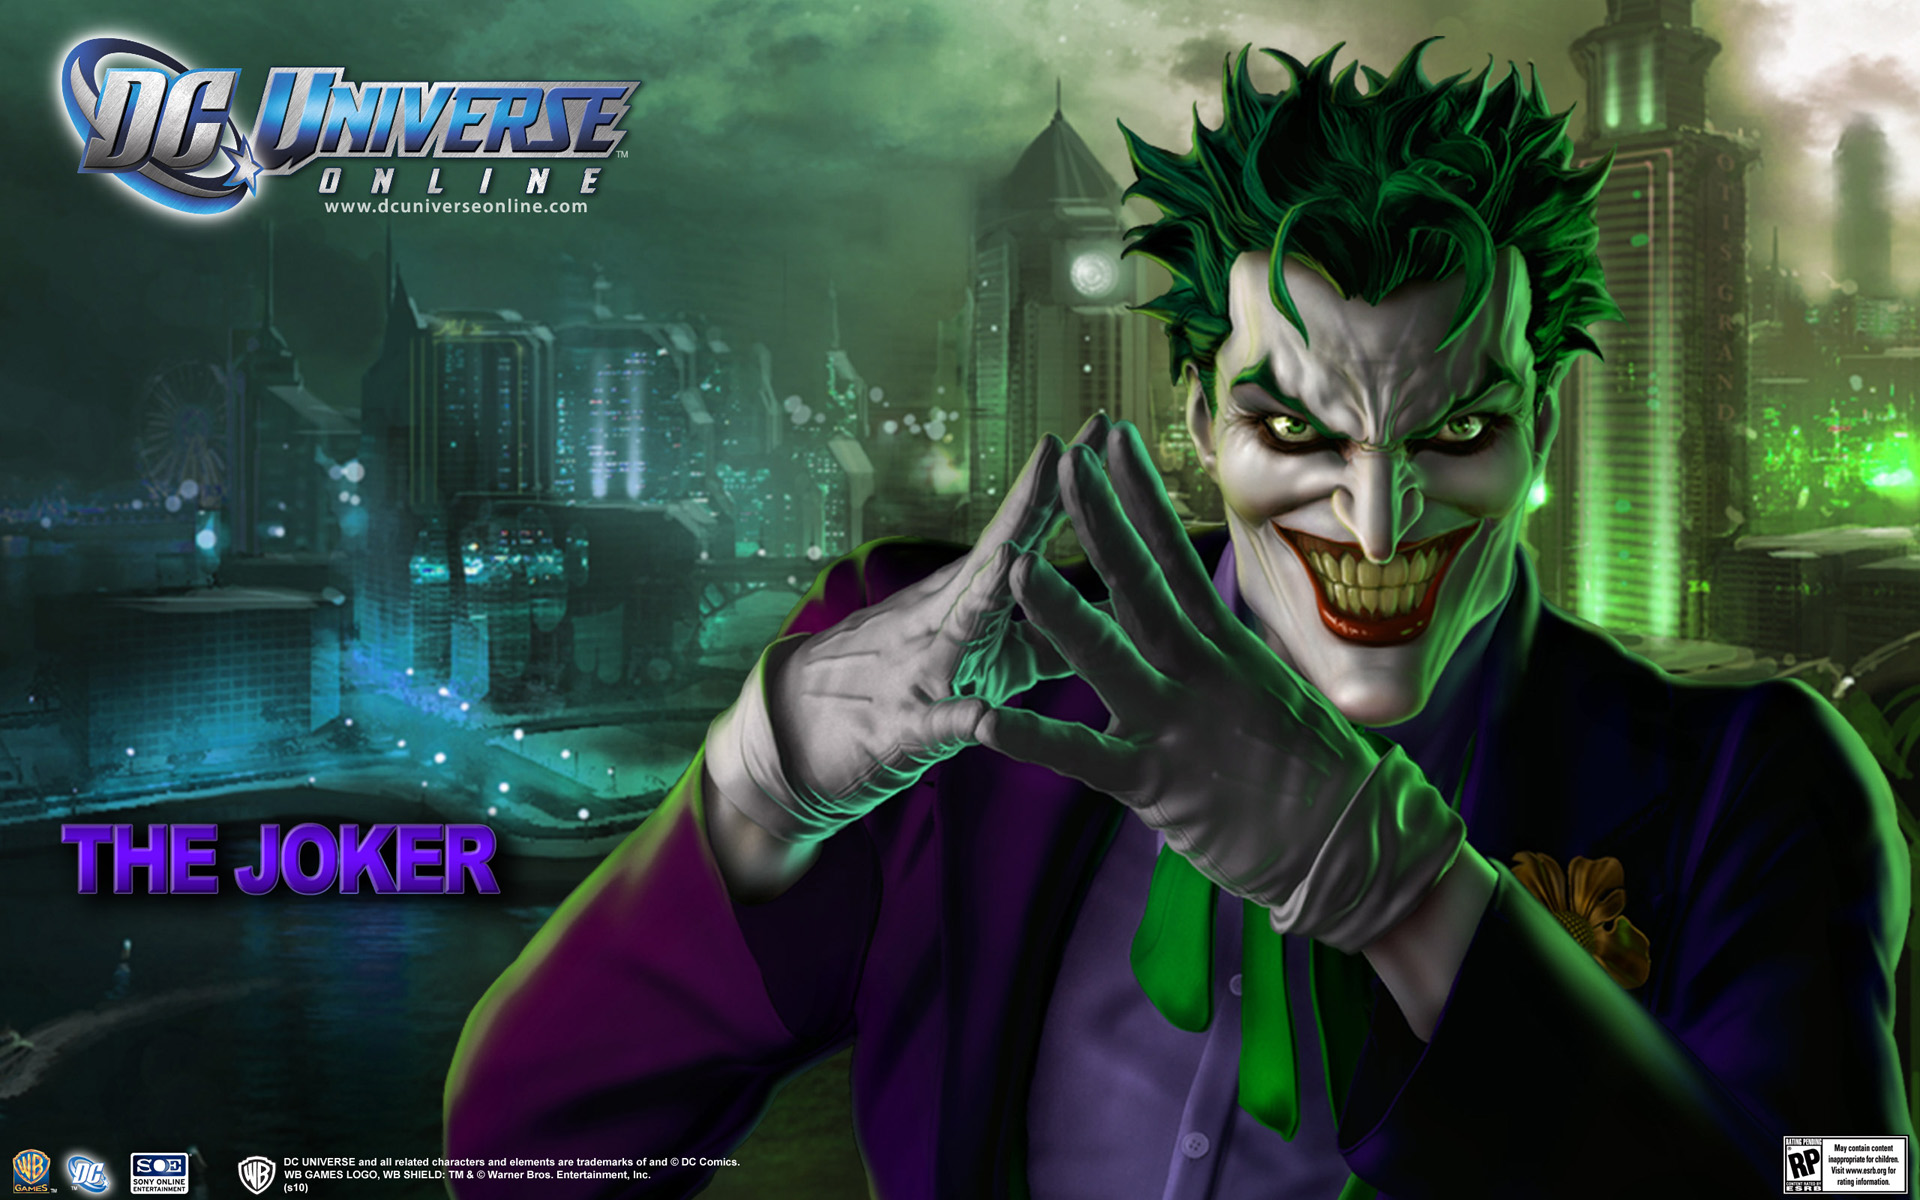 DC_Univers_the joker